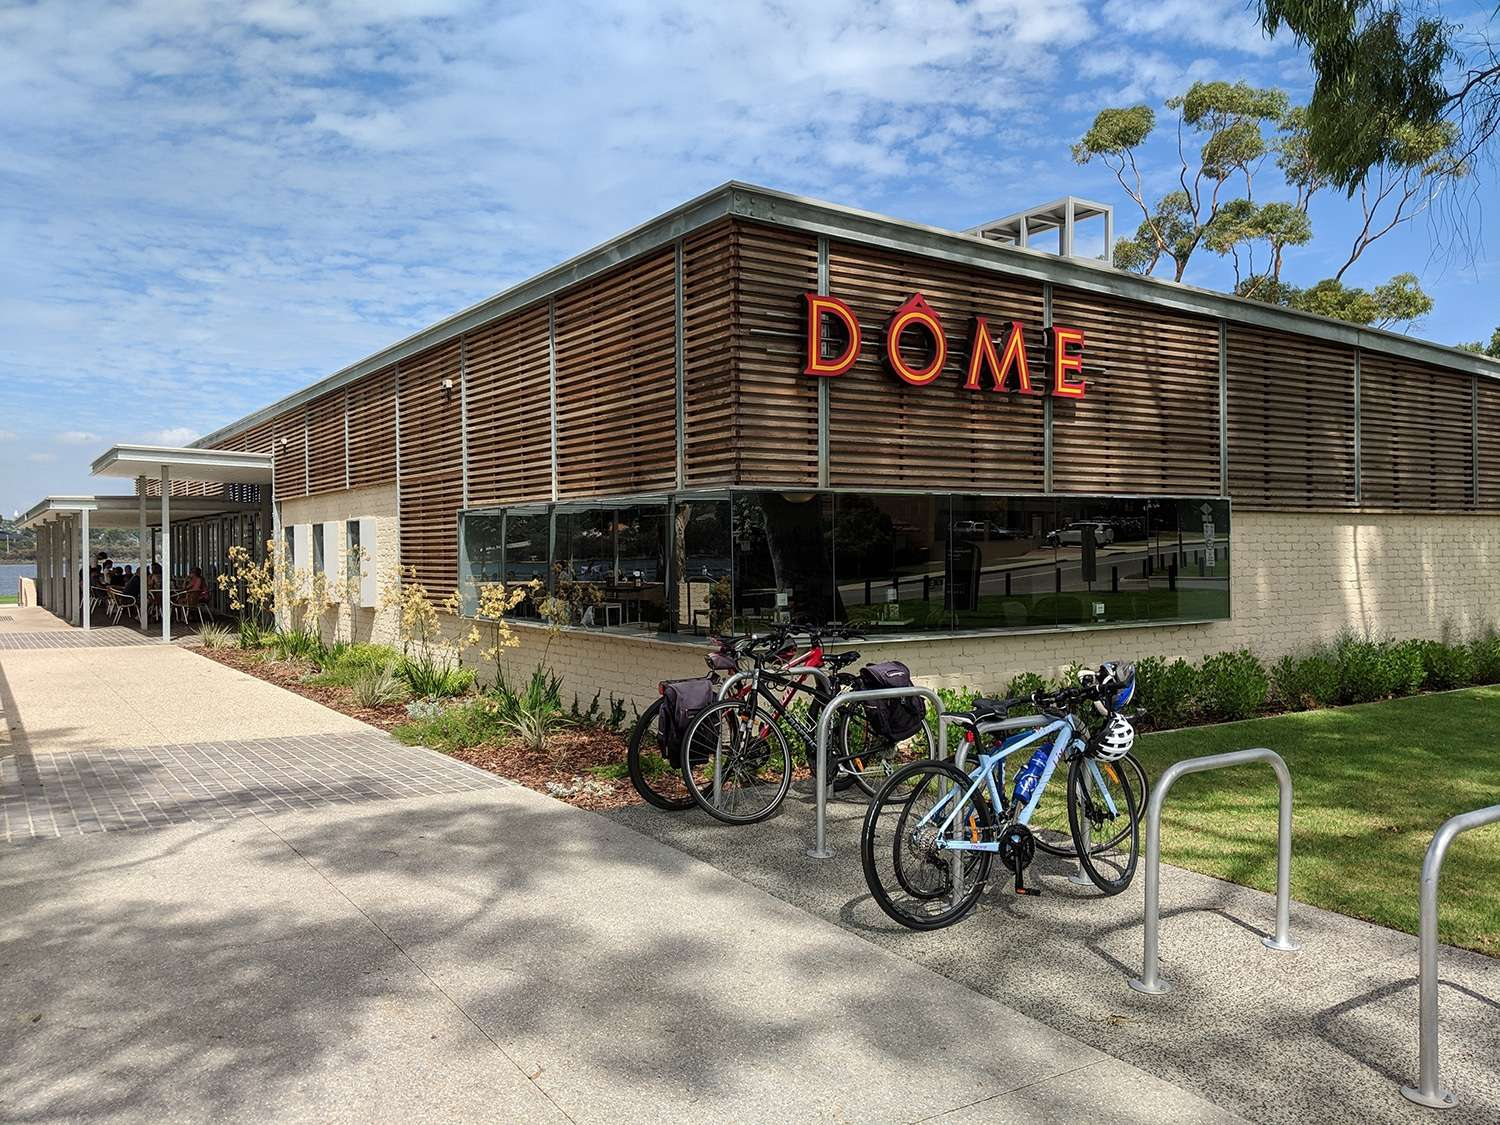 Dome Cafe - Deep Water Point